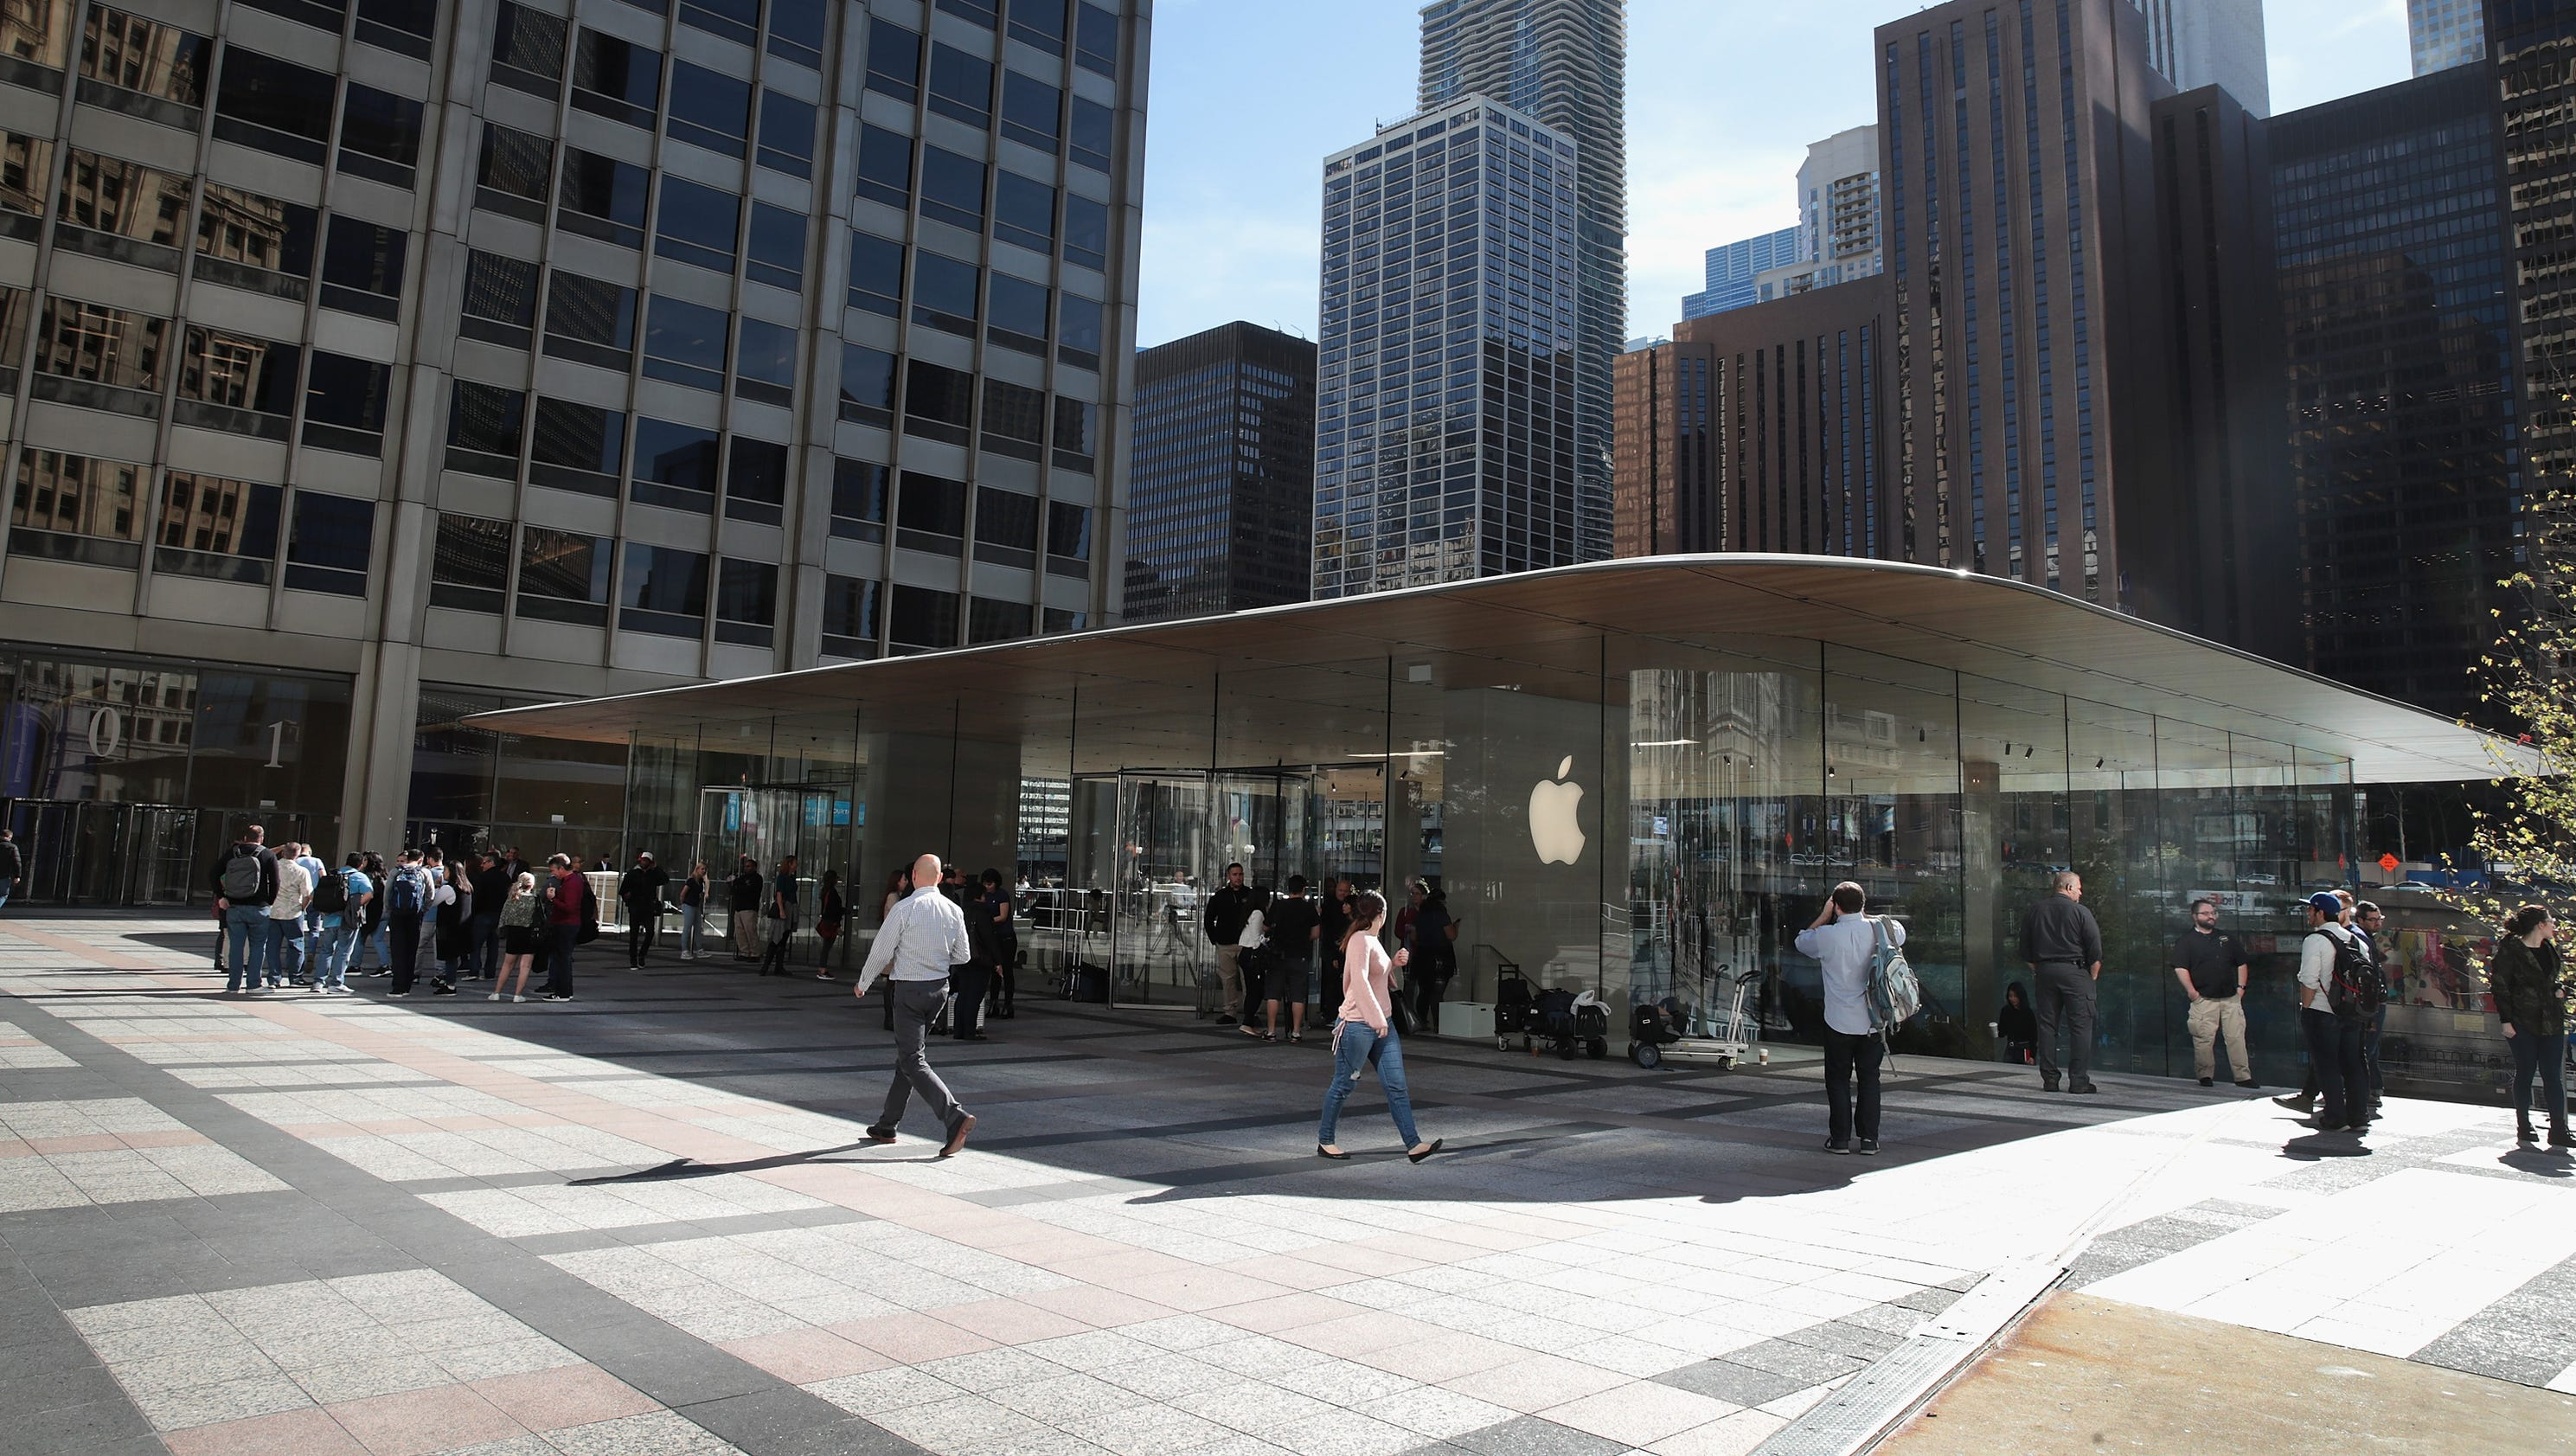 apple chat support jobs chicago